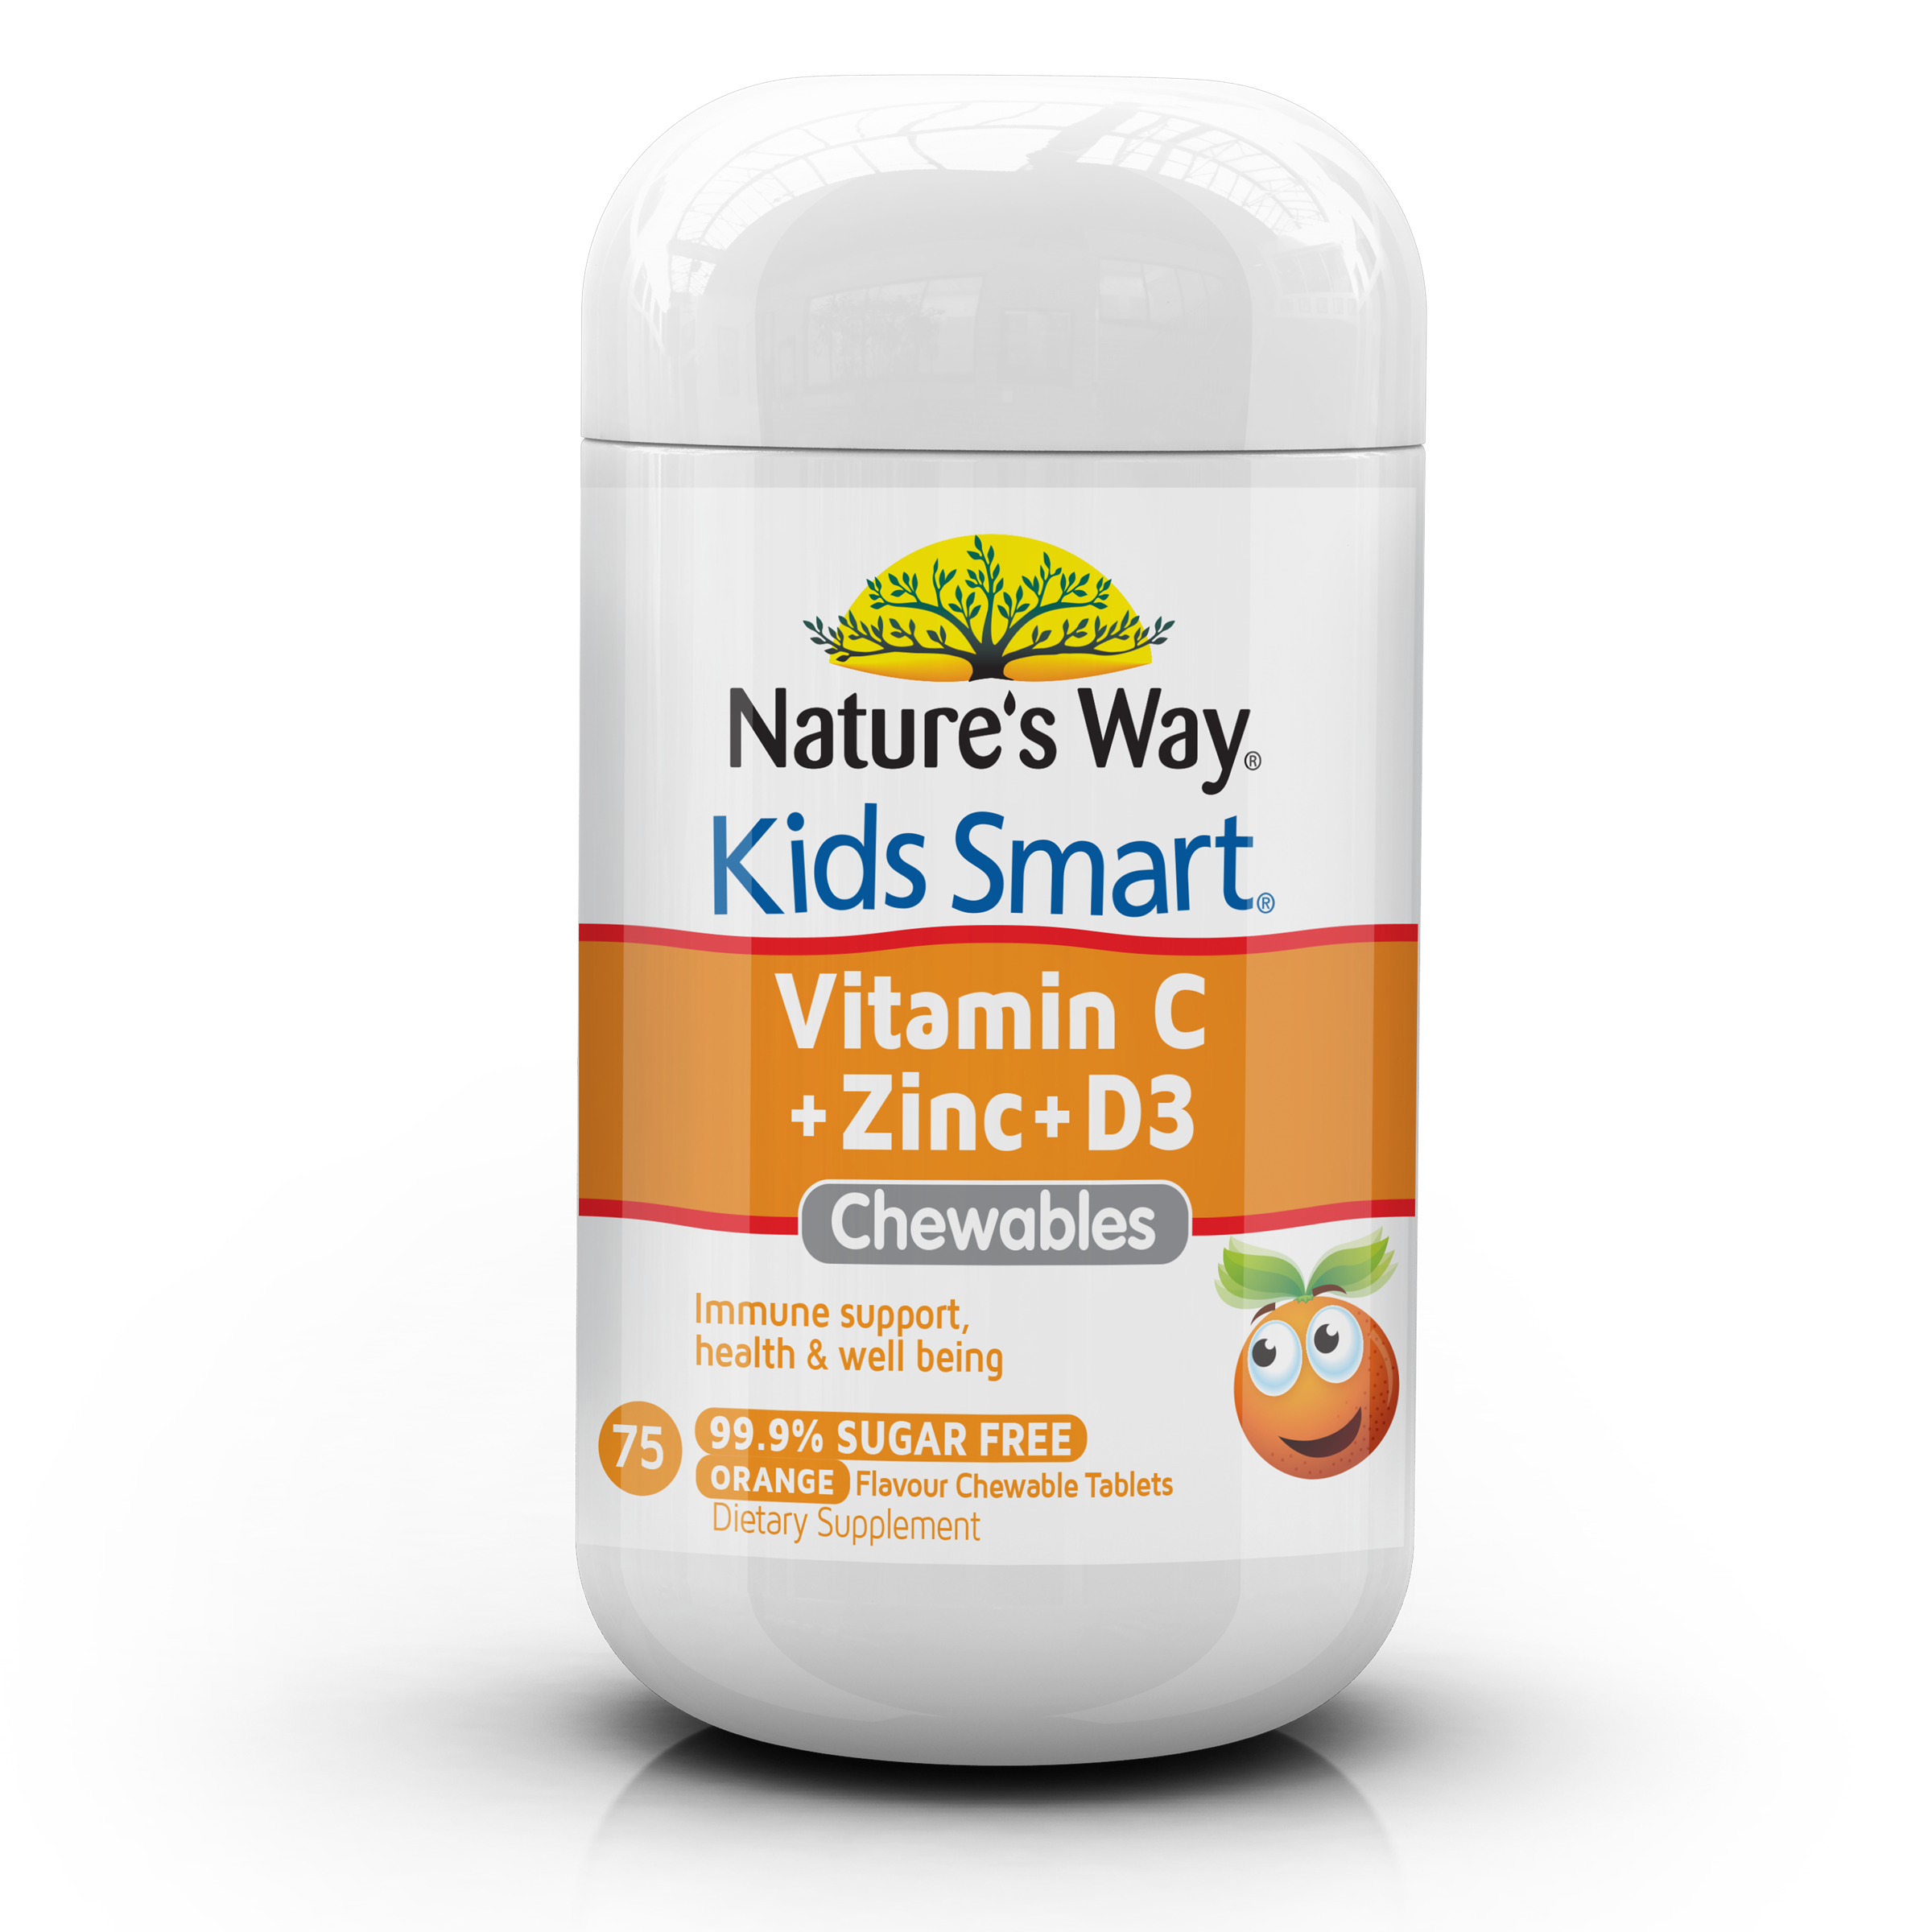 Nature's Way Kids Smart Vitamin C + Zinc + D3 Chewables 75s